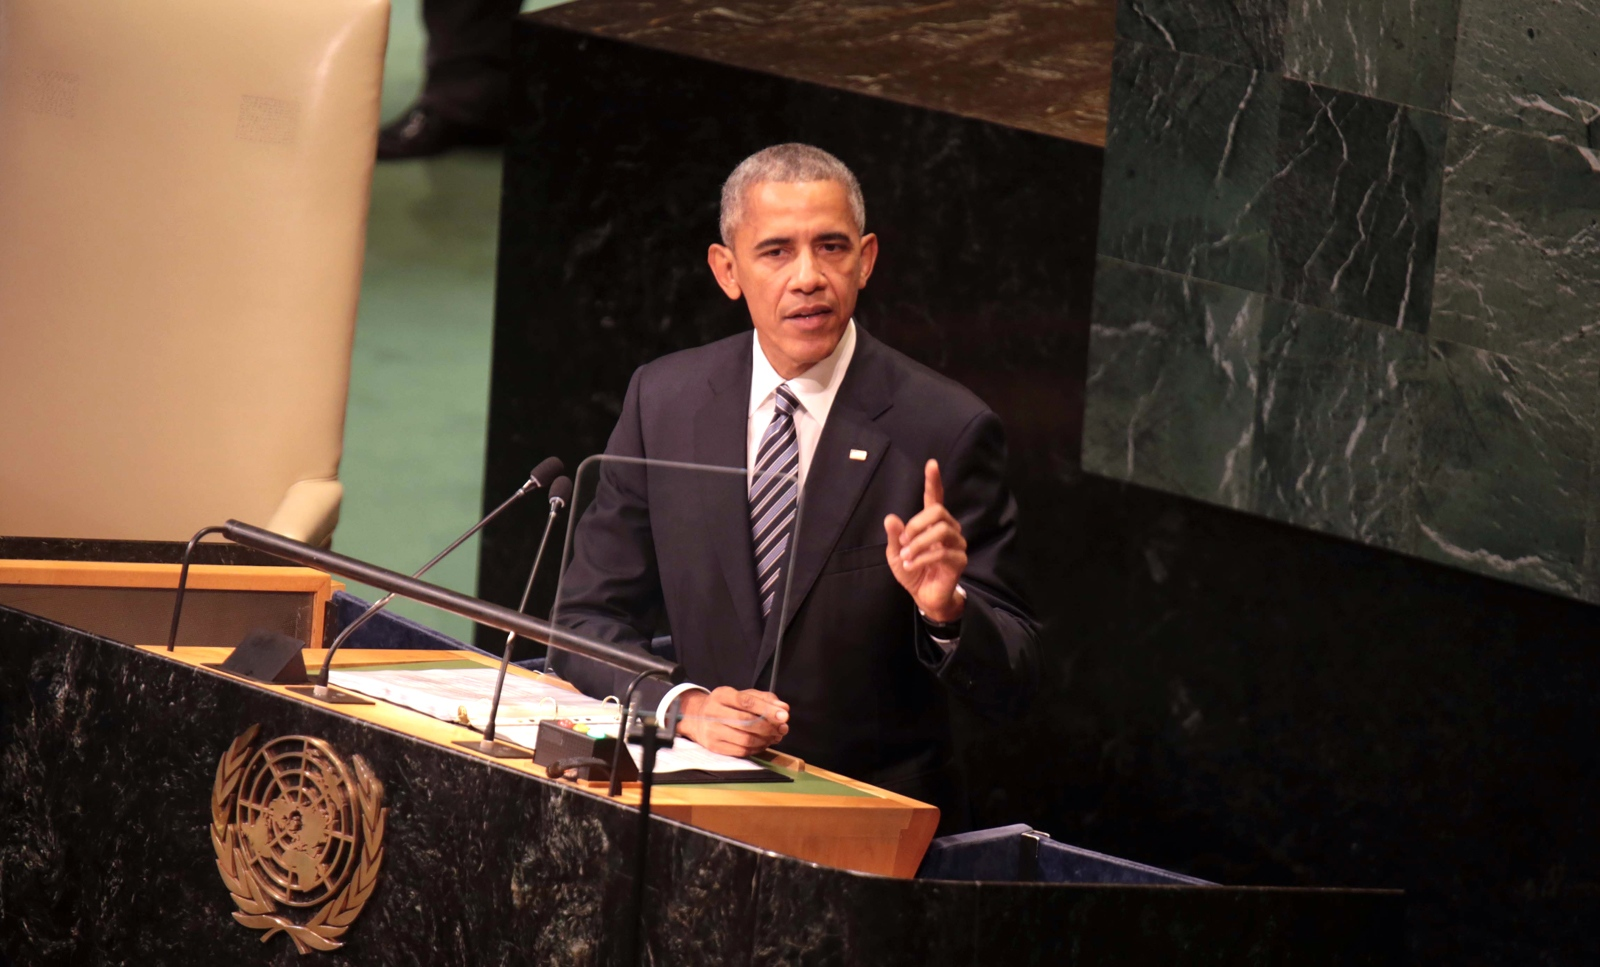 President Barack Obama address the 71th session of the United Nations General Assembly. Standing before the United Nations for the last time as president, Barack Obama reassured foreign leaders that the world is better equipped to tackle its challenges than almost any point in history despite a cascade of harrowing crises that seem devoid of viable solutions.